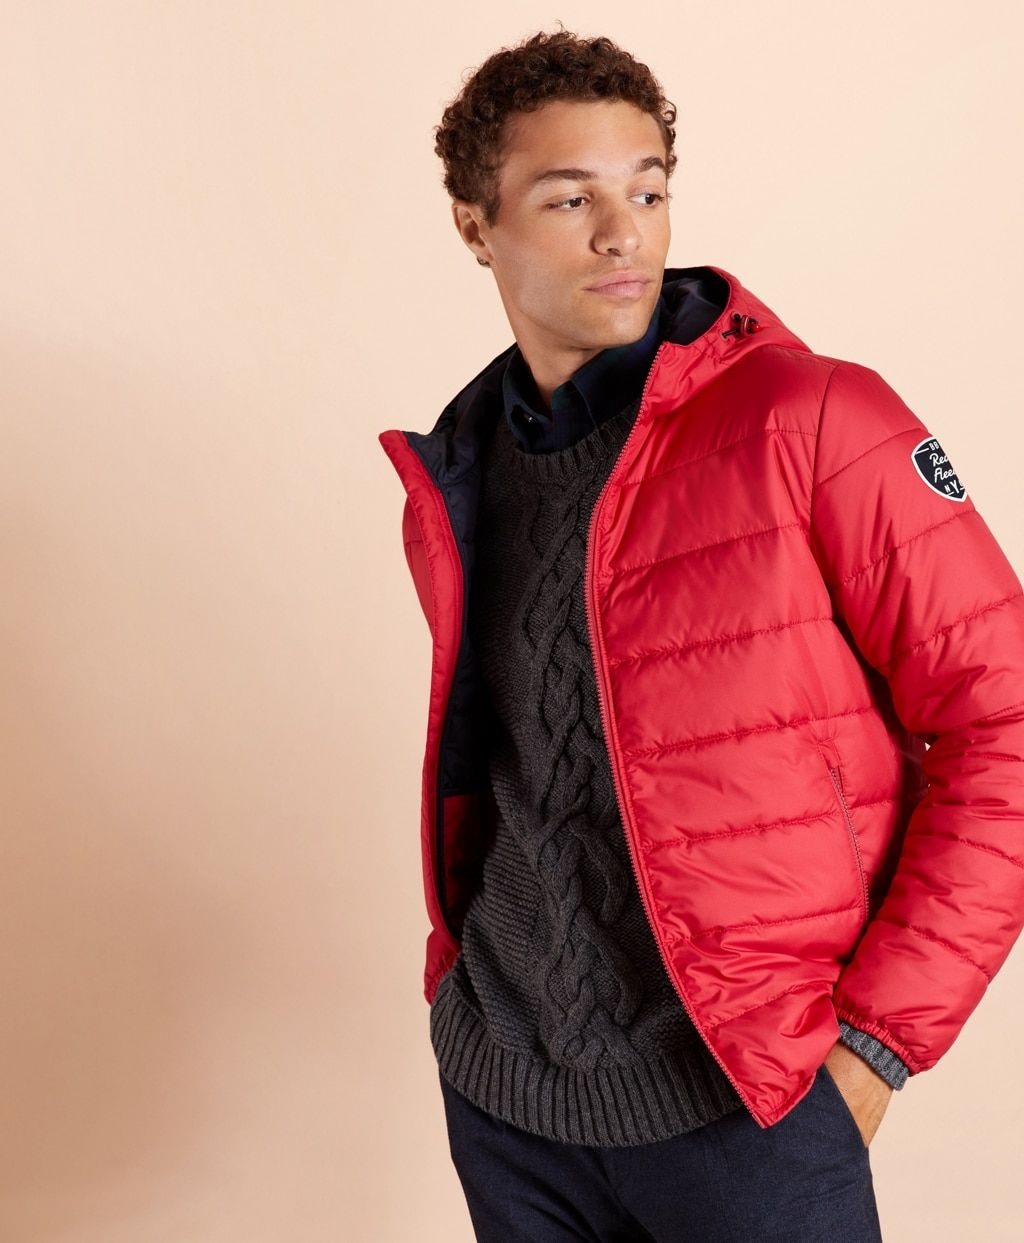 Quilted Hooded Puffer Jacket Brooks Brothers In 2021 Red Puffer Jacket Puffer Jackets Jackets [ 1243 x 1024 Pixel ]